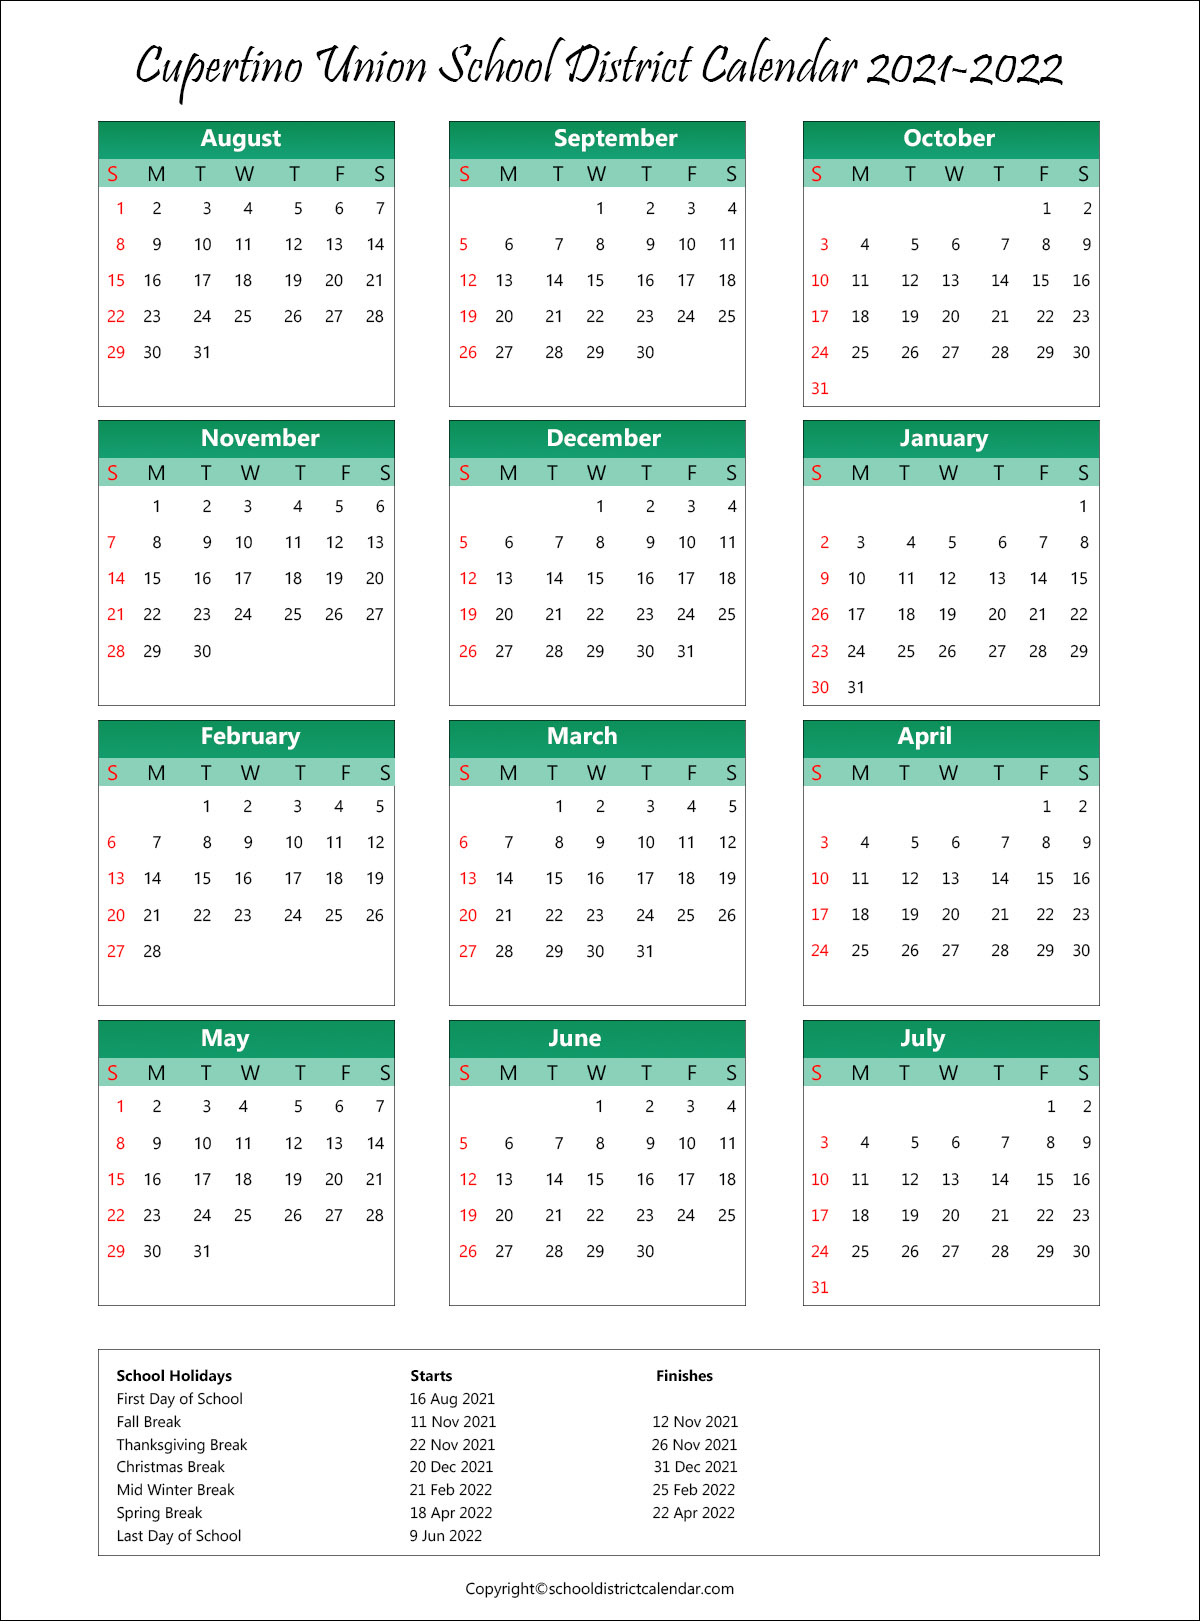 Cupertino Union School District, California Calendar Holidays 2021